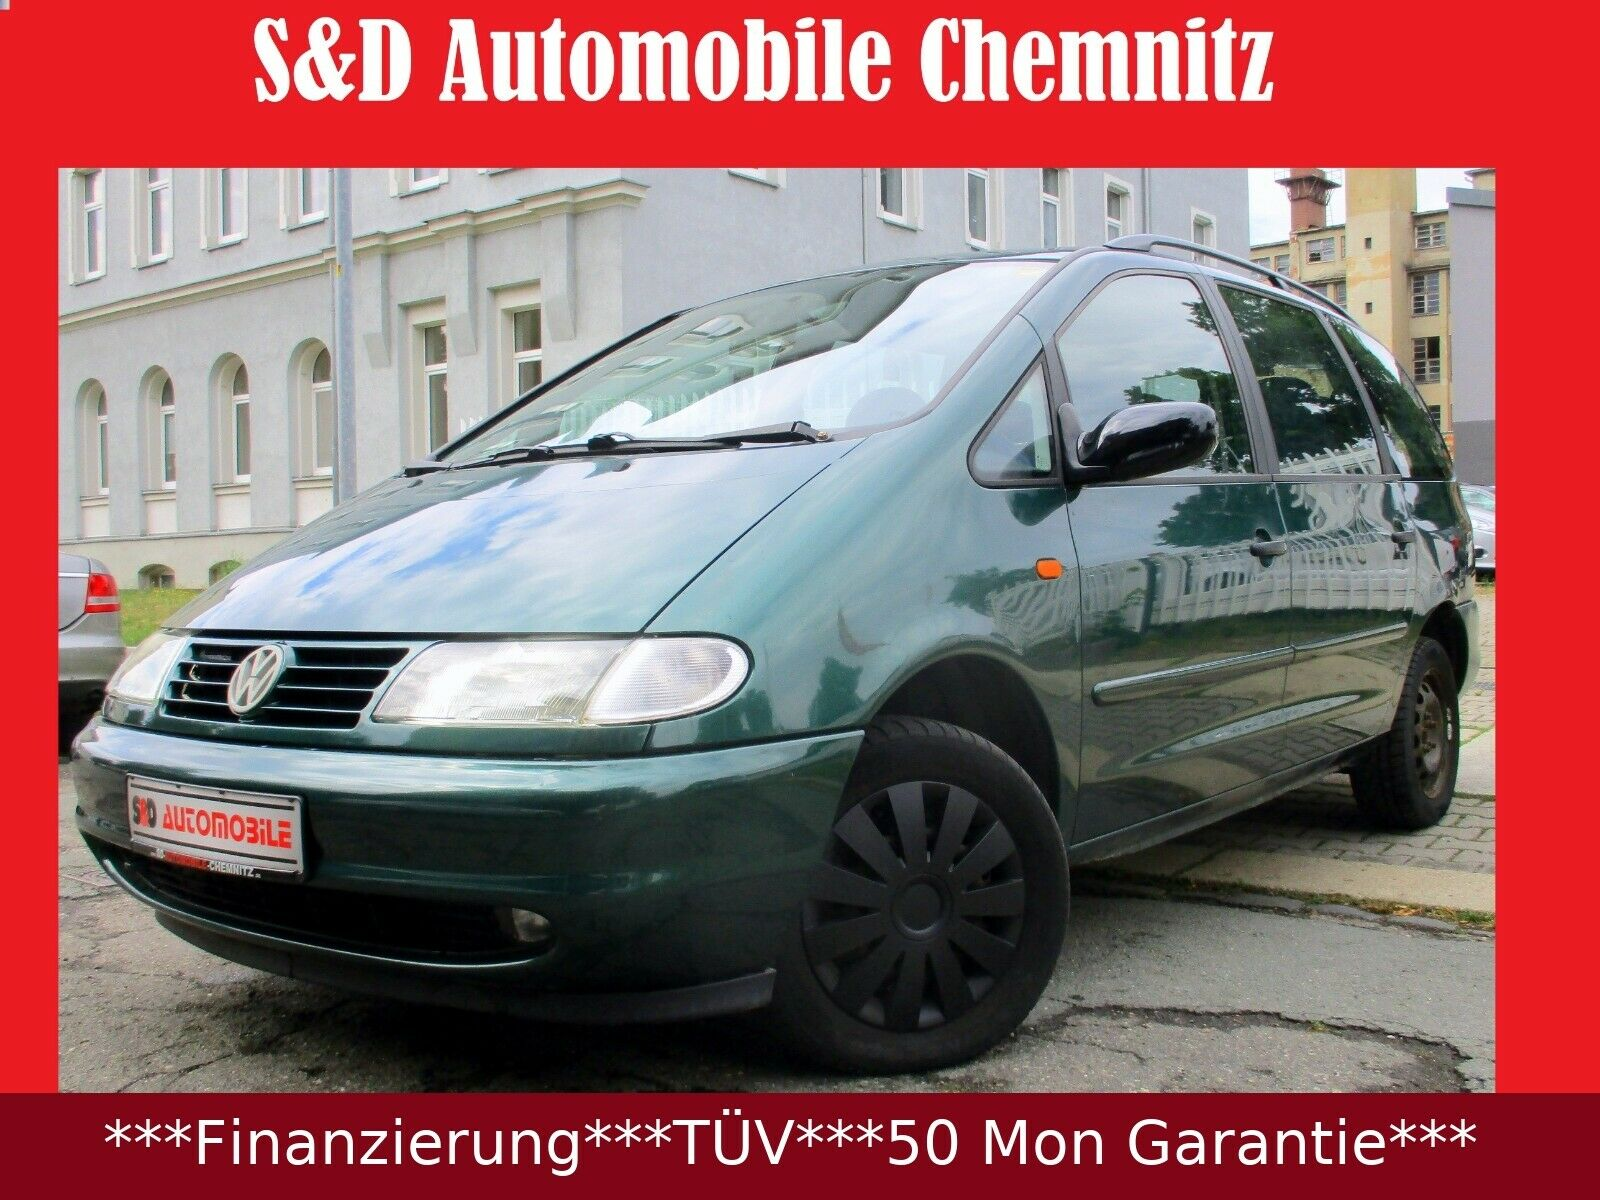 VW Sharan 2.8 VR6 Comfortline Family